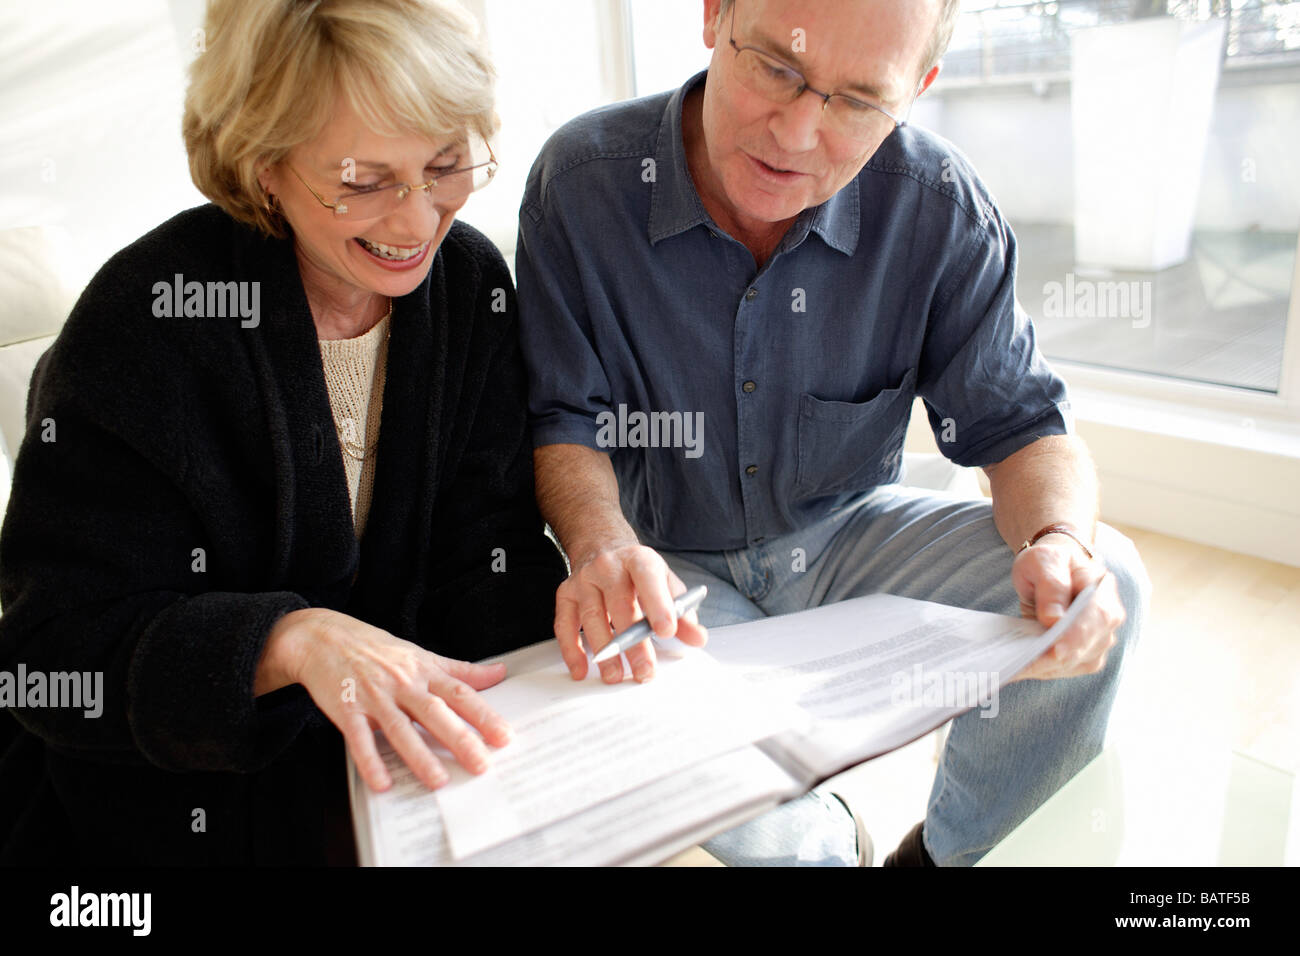 Couple signing forms. - Stock Image